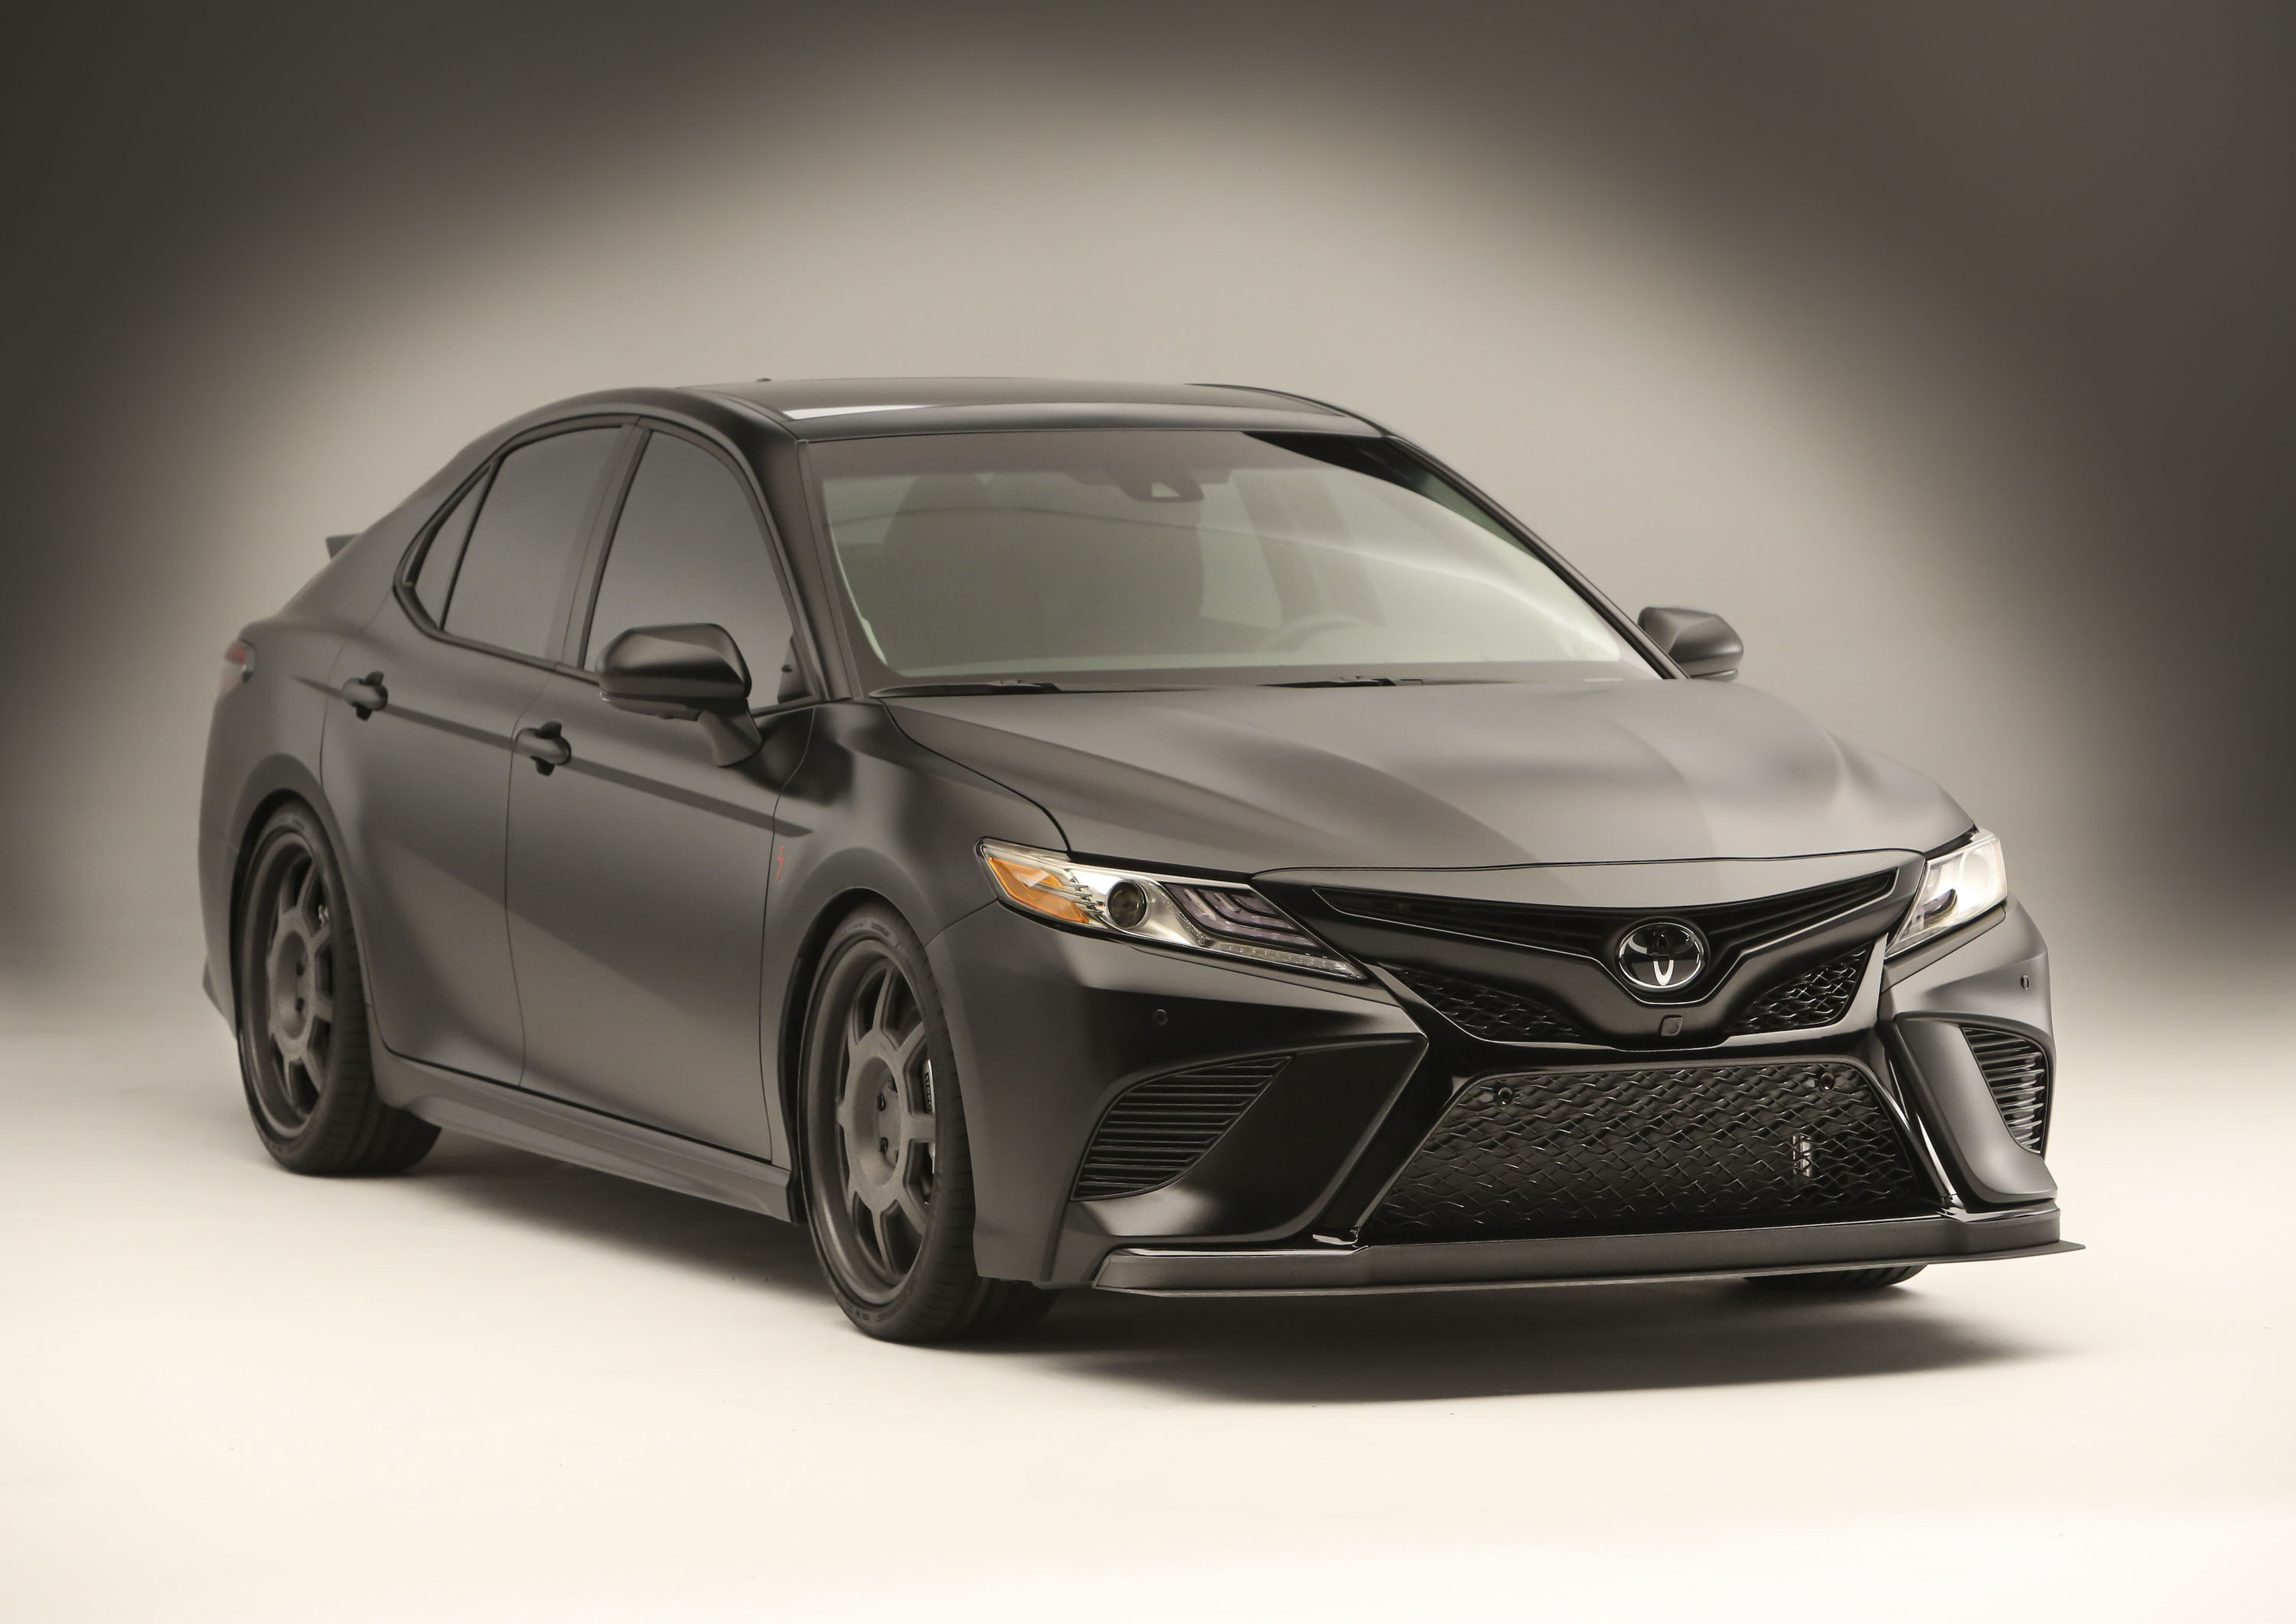 Black Toyota Camry >> Nascar Champ Truex Jr Designs All Black Toyota Camry For Sema Top